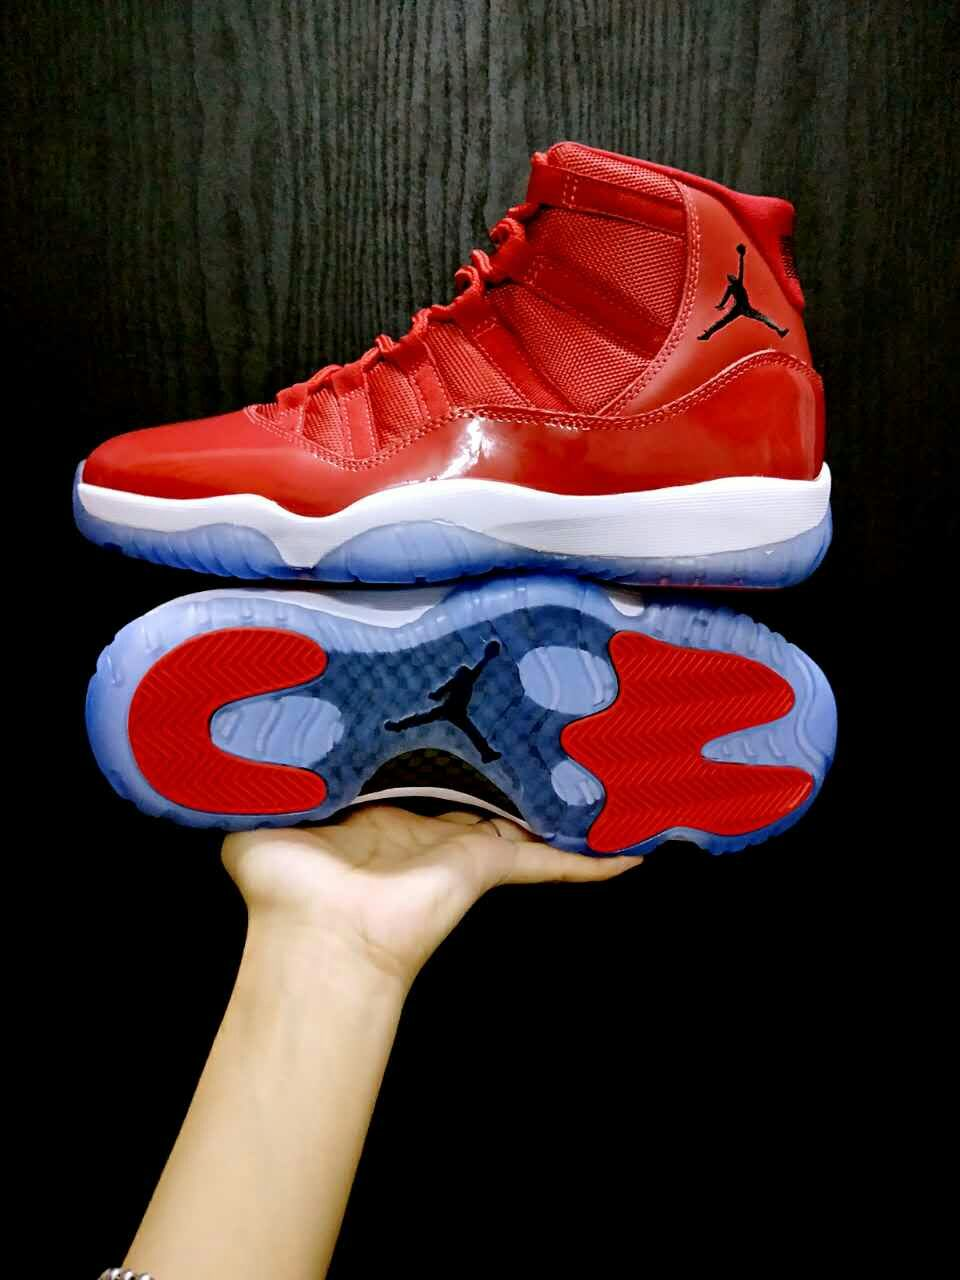 2017 Women Jordan 11 All Red Ice Sole Shoes